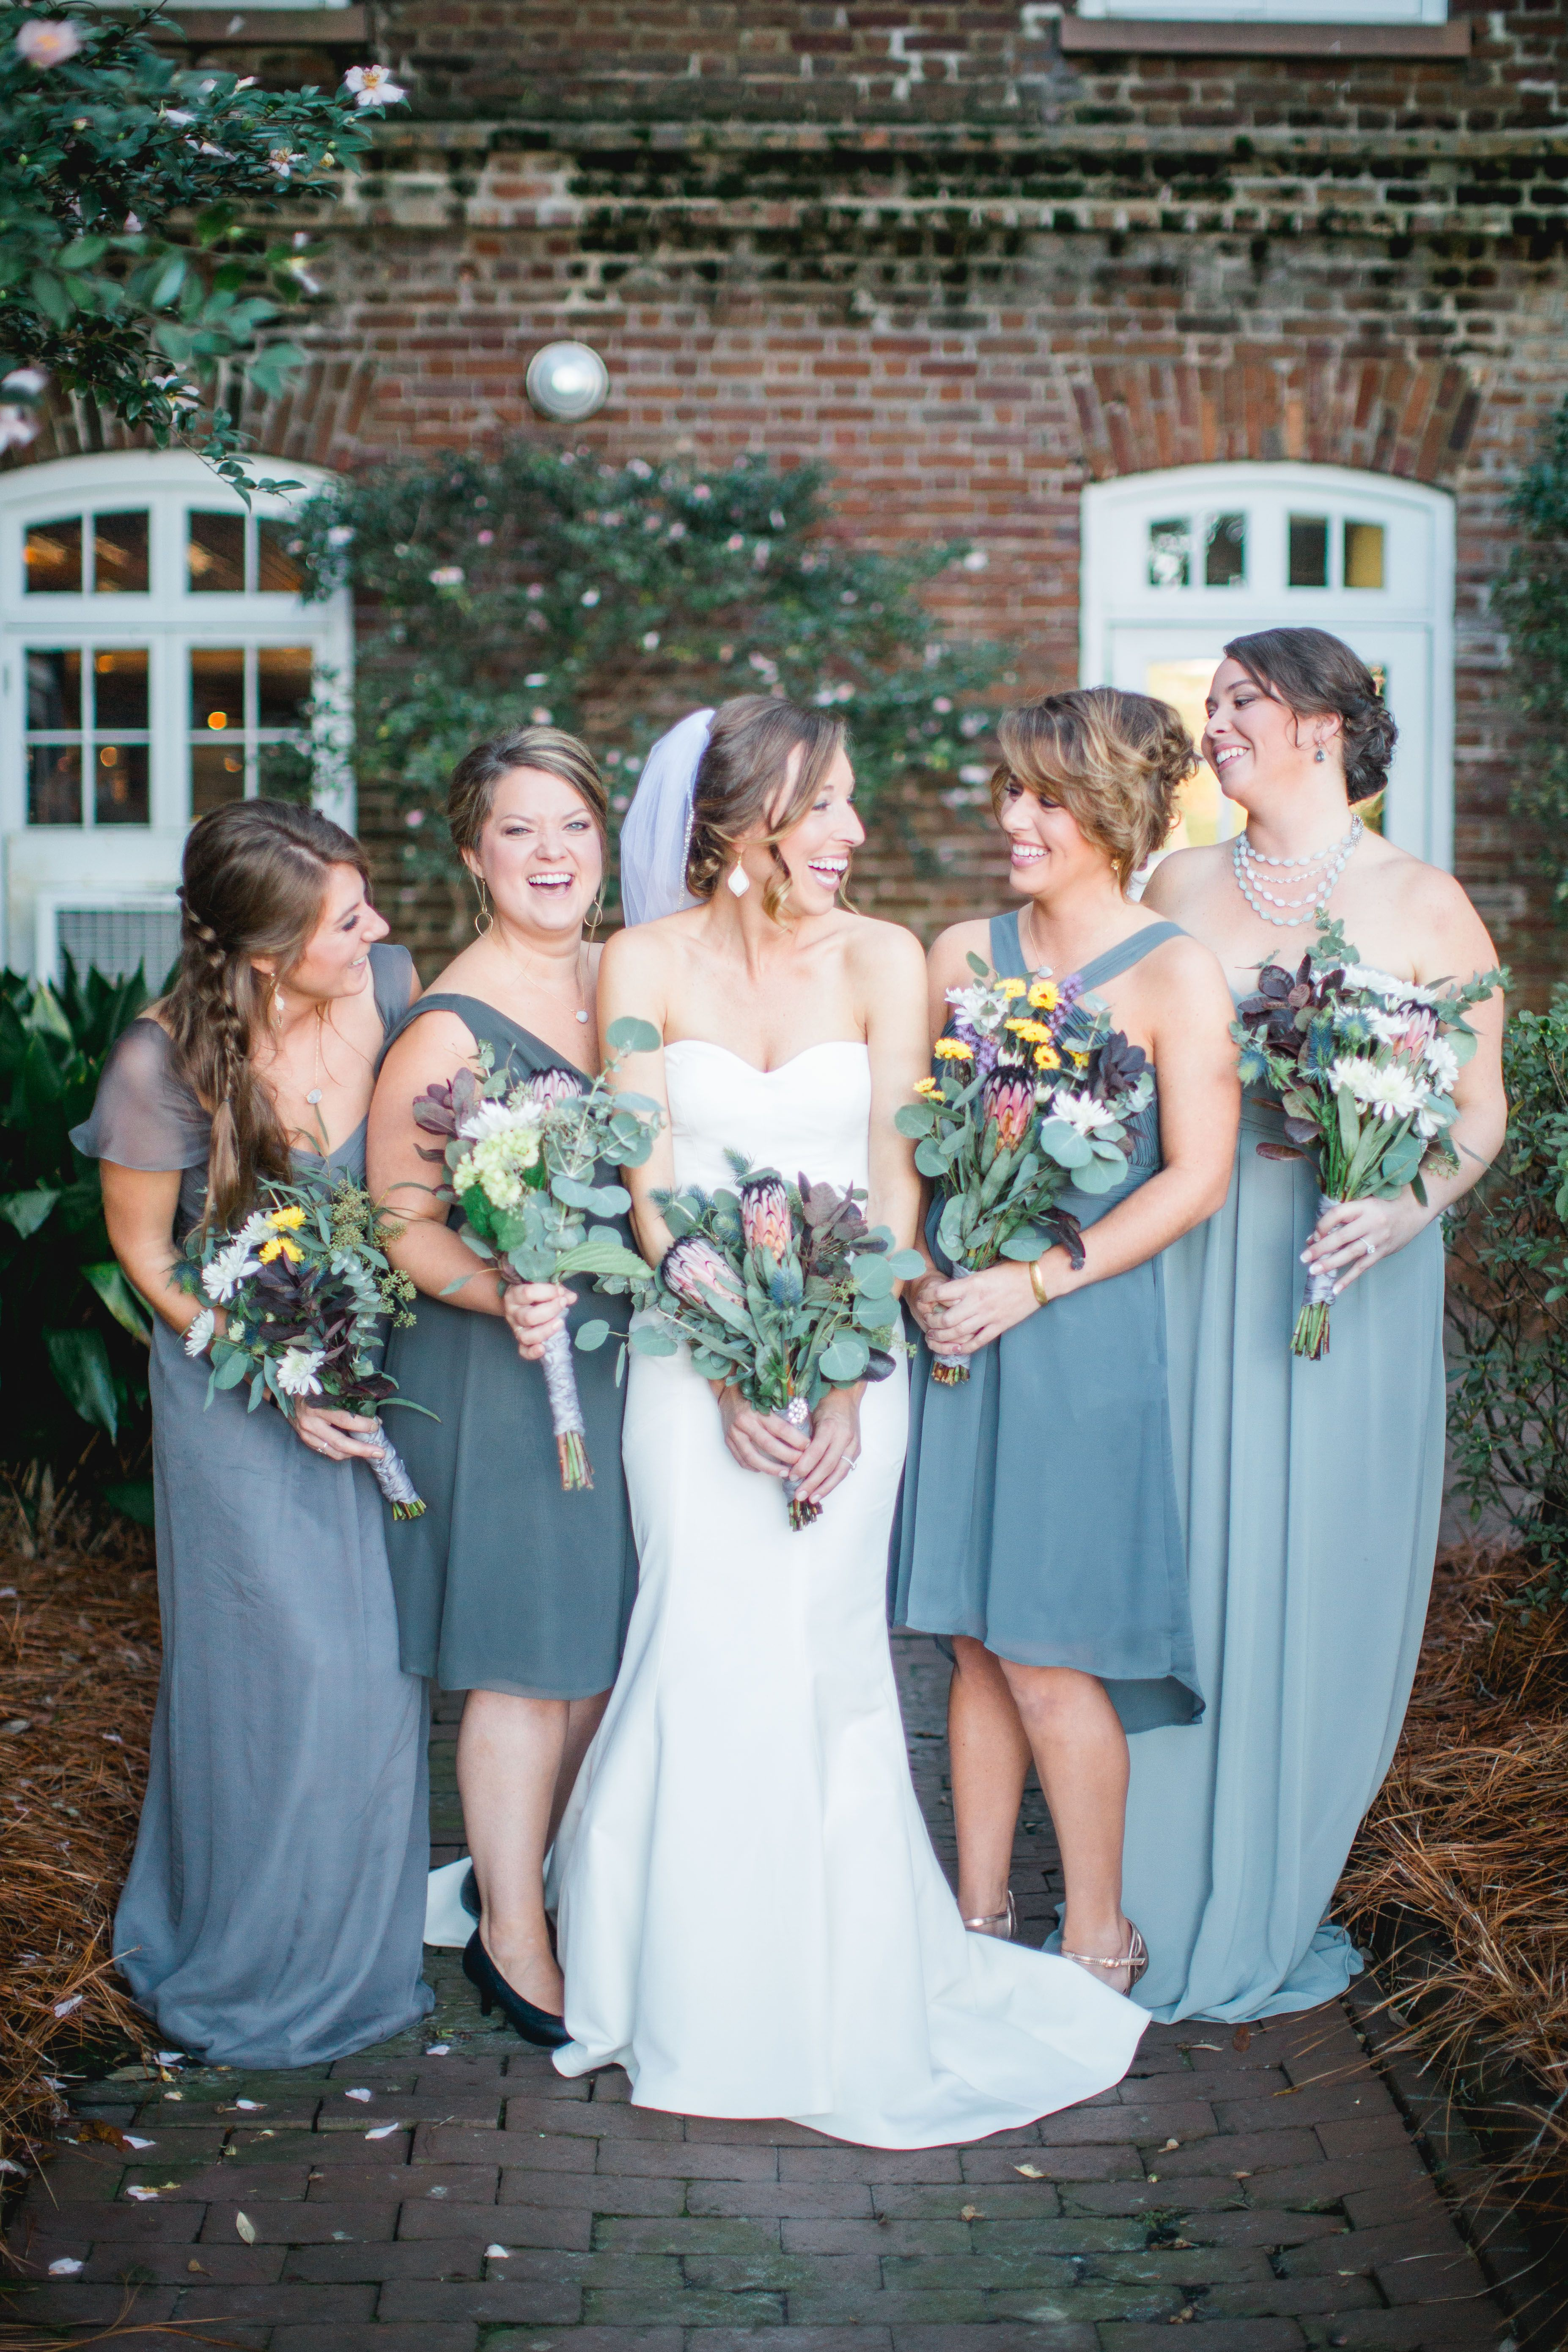 dfaf12d6ba Mismatched Slate Gray Bridesmaid Dresses. Mismatched Slate Gray Bridesmaid  Dresses Slate Blue ...